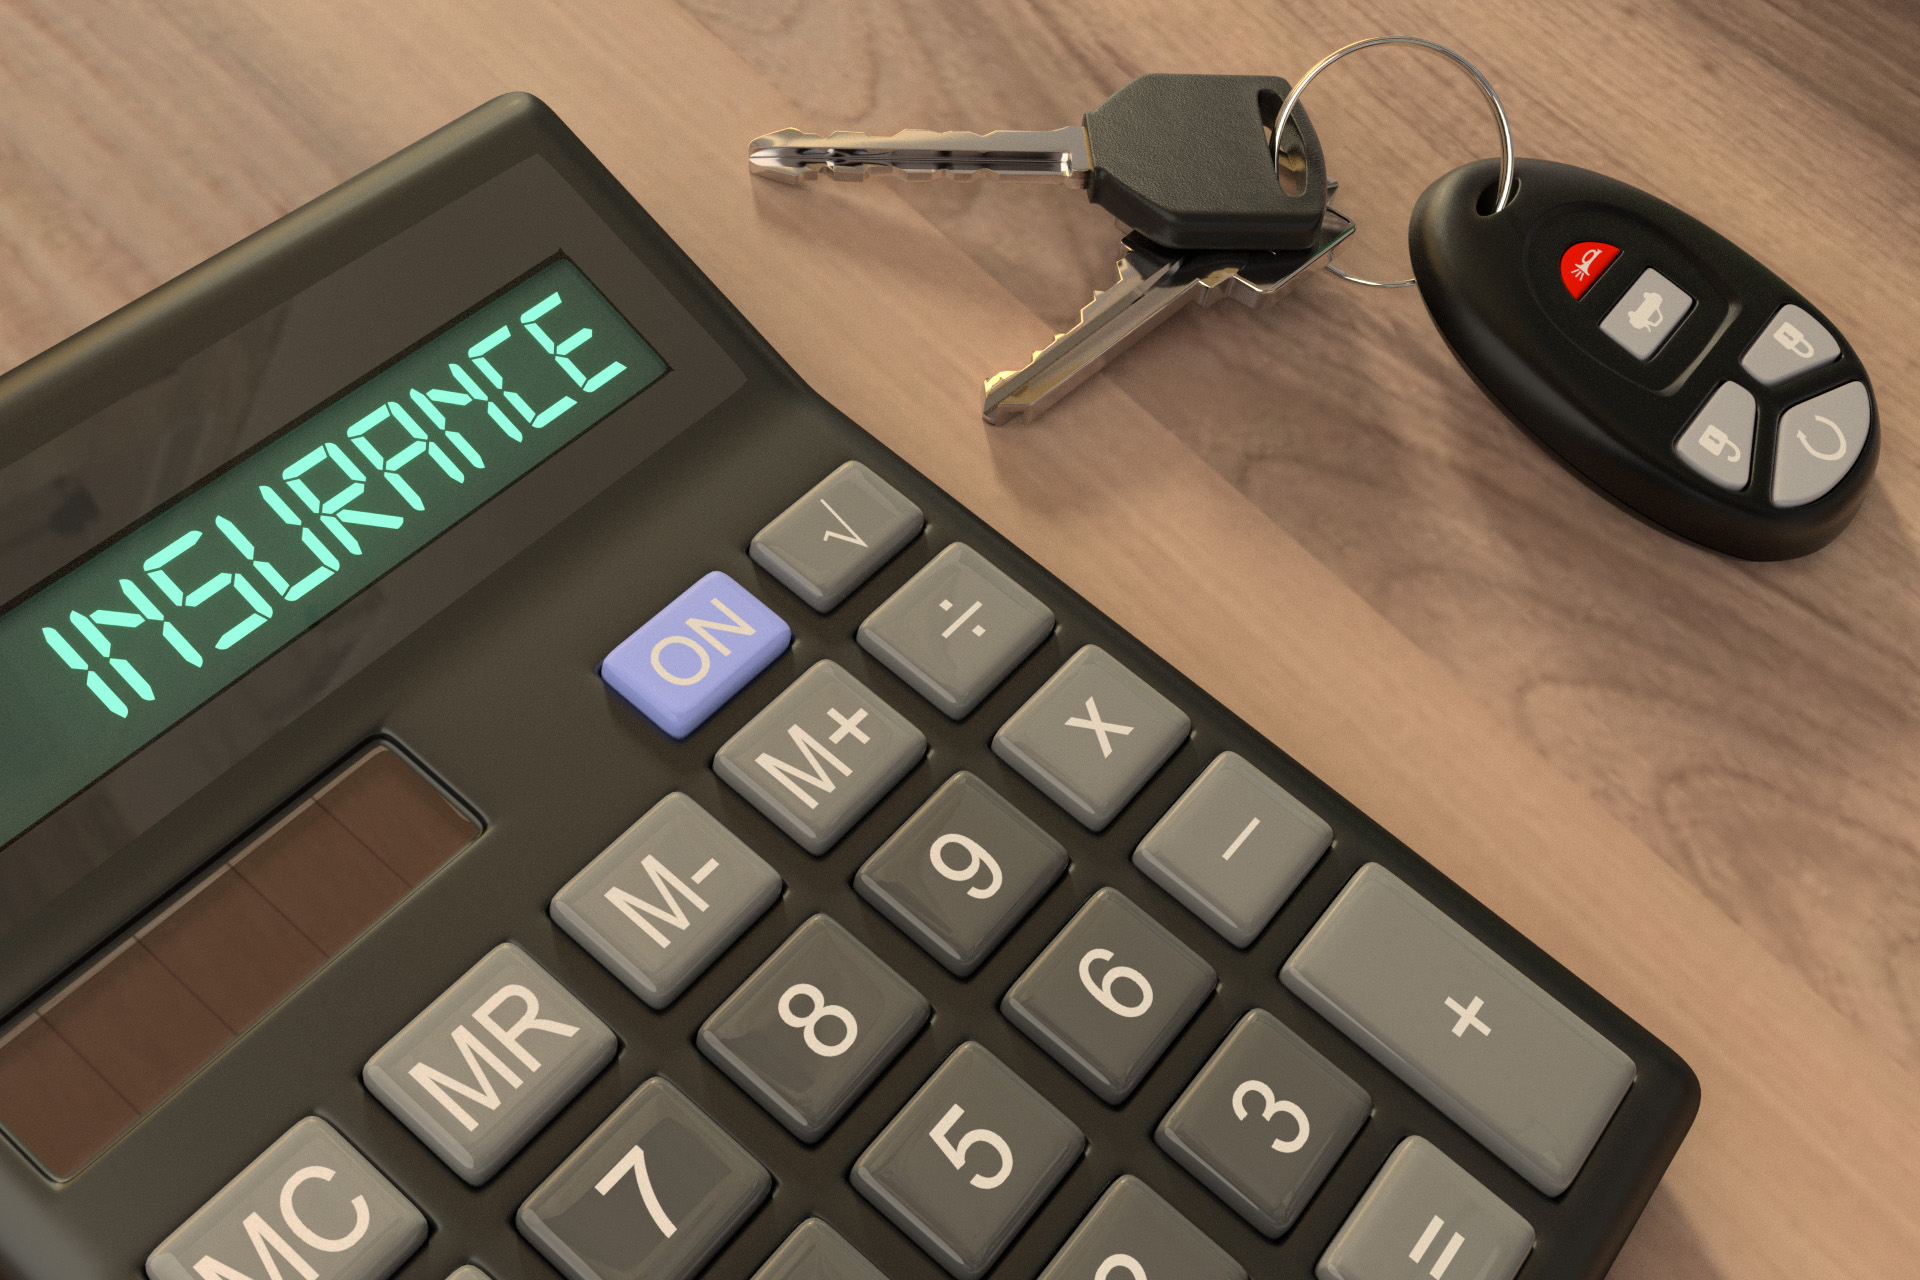 Insurance calculator with keys free image download